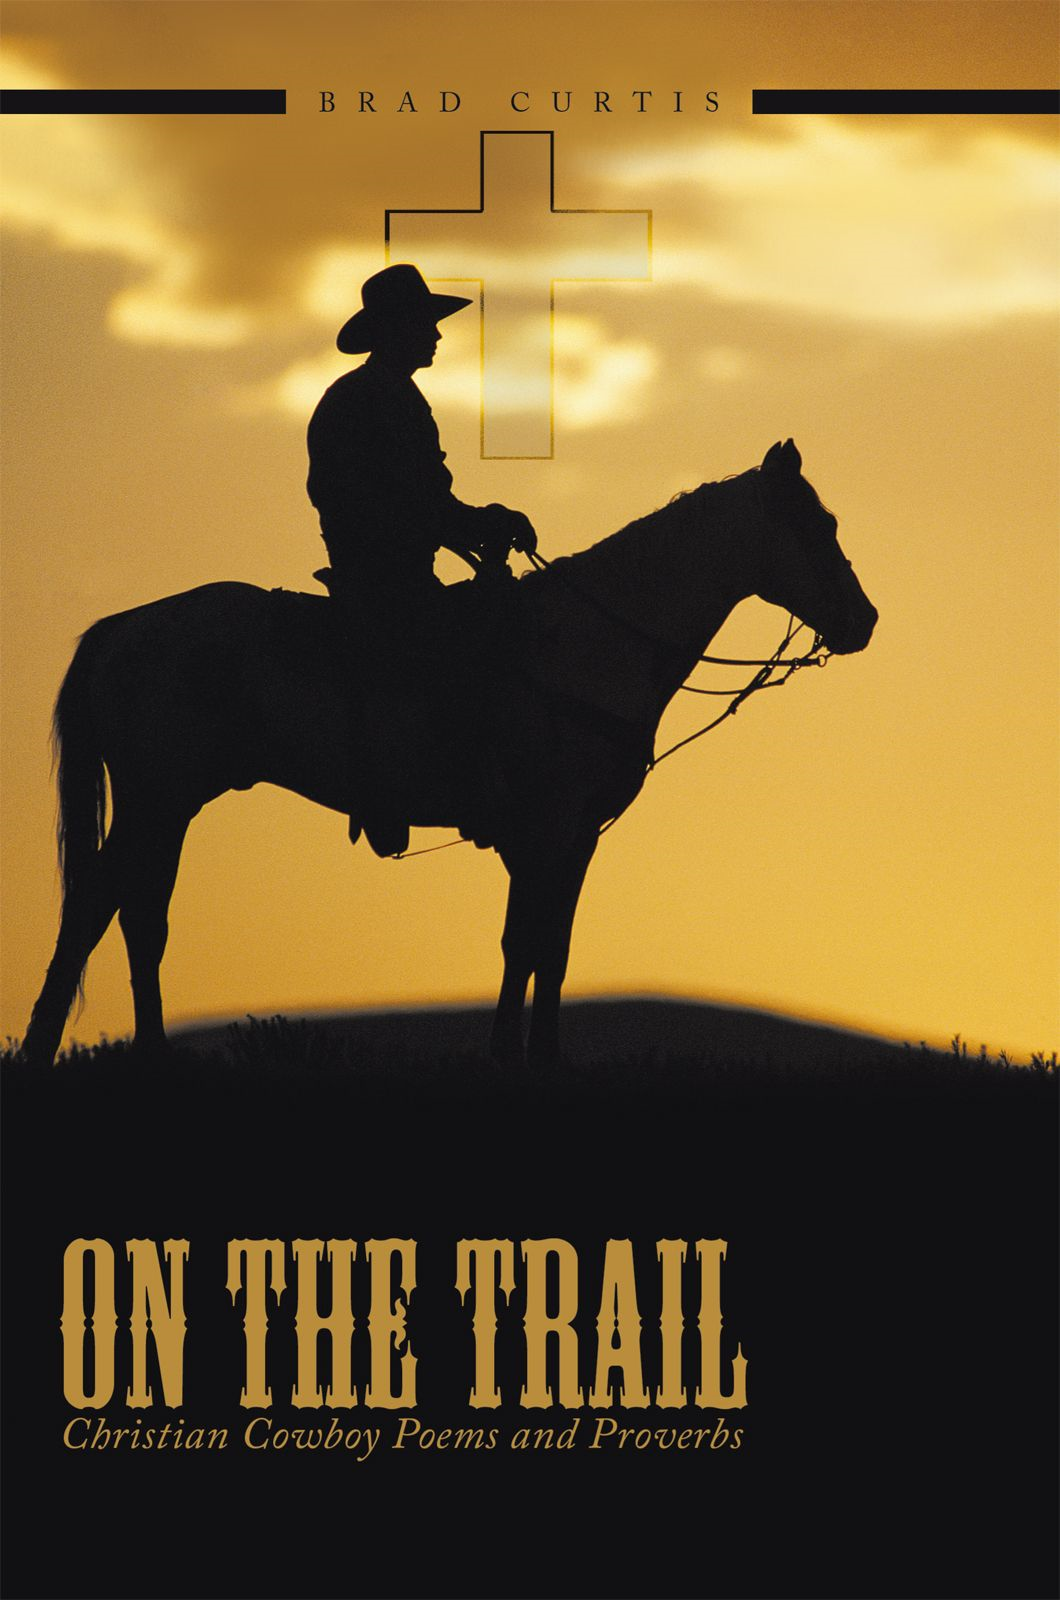 On The Trail By: Brad Curtis